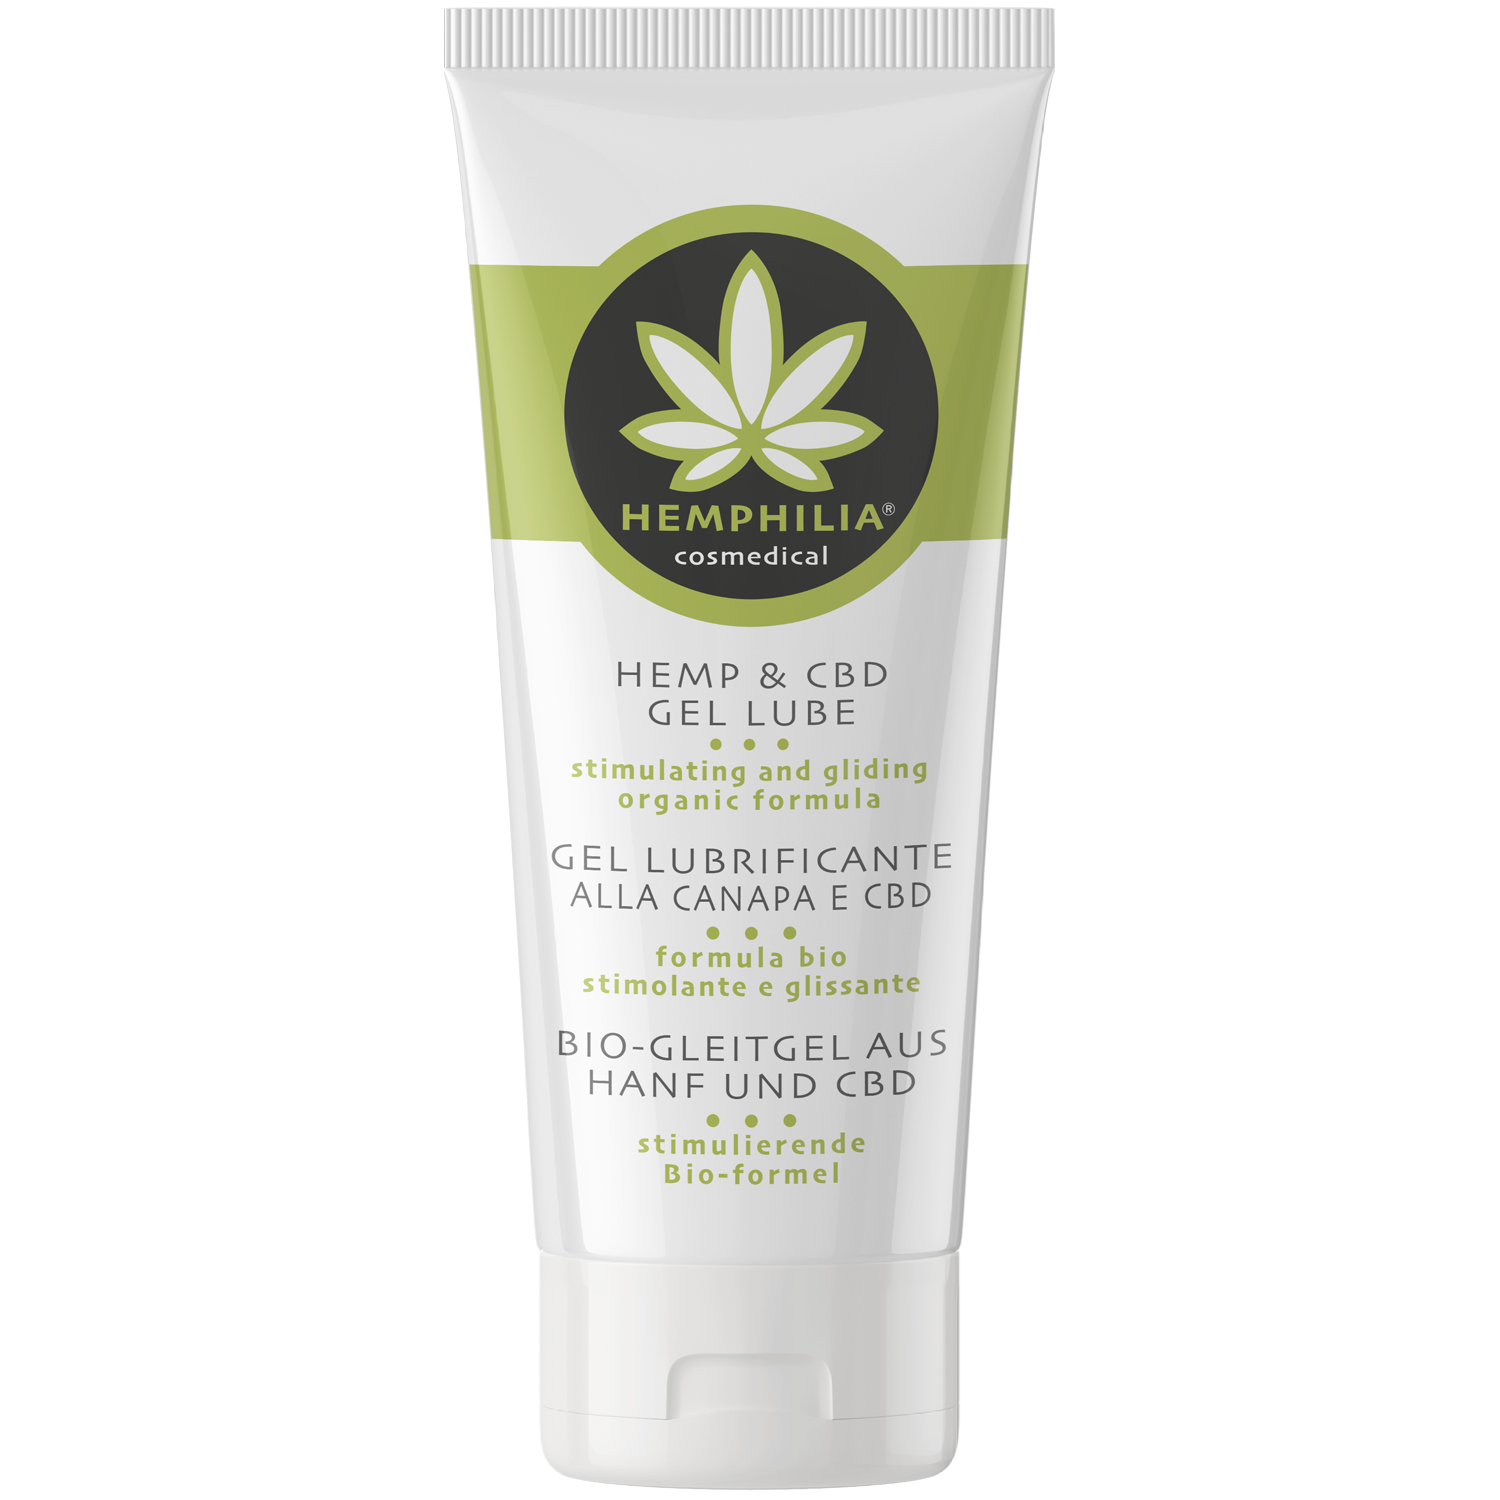 HEMP & CBD GEL LUBE